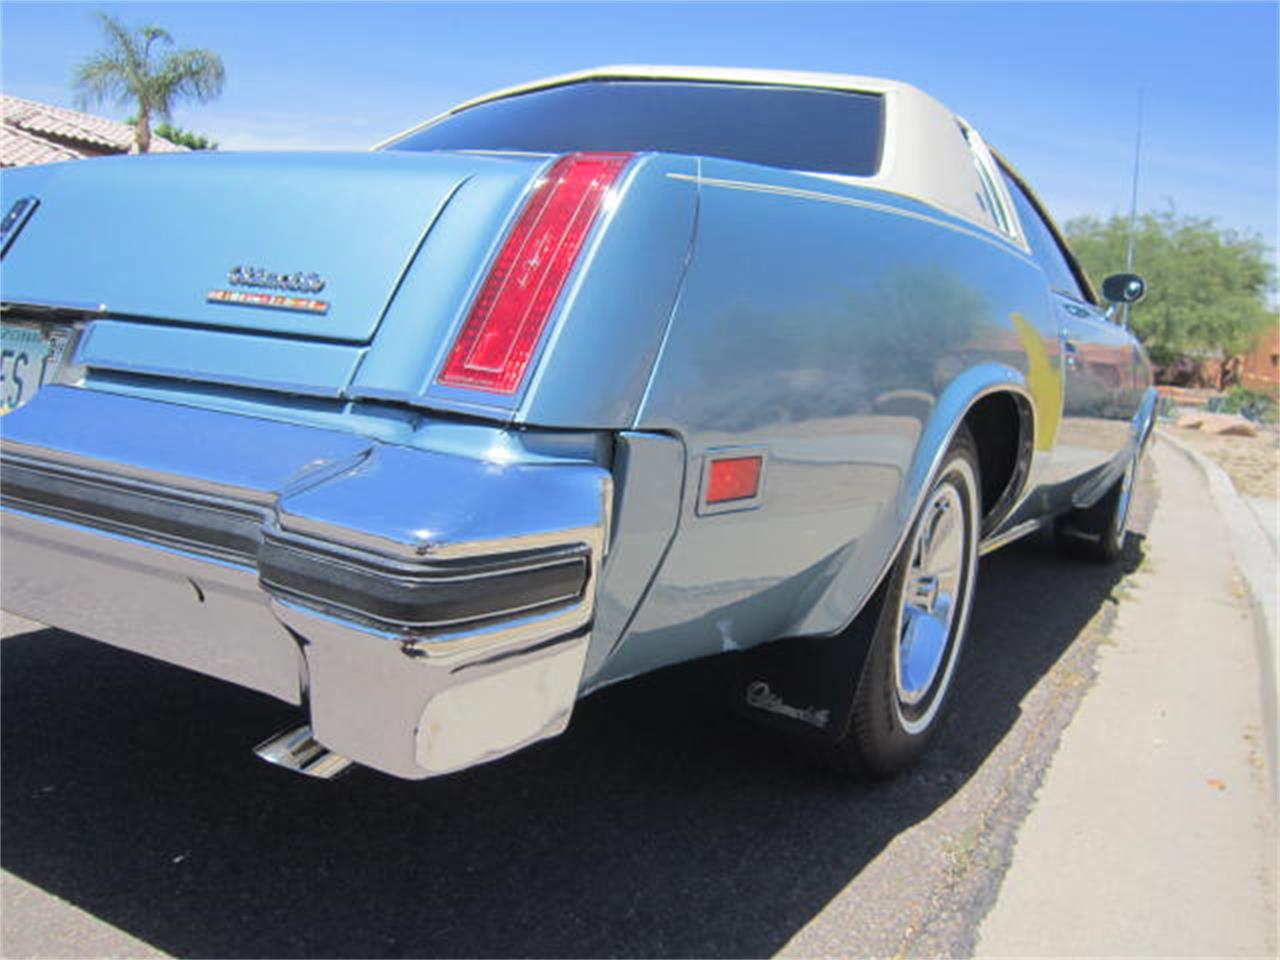 Large Picture of '77 Oldsmobile Cutlass - $15,000.00 - DISY